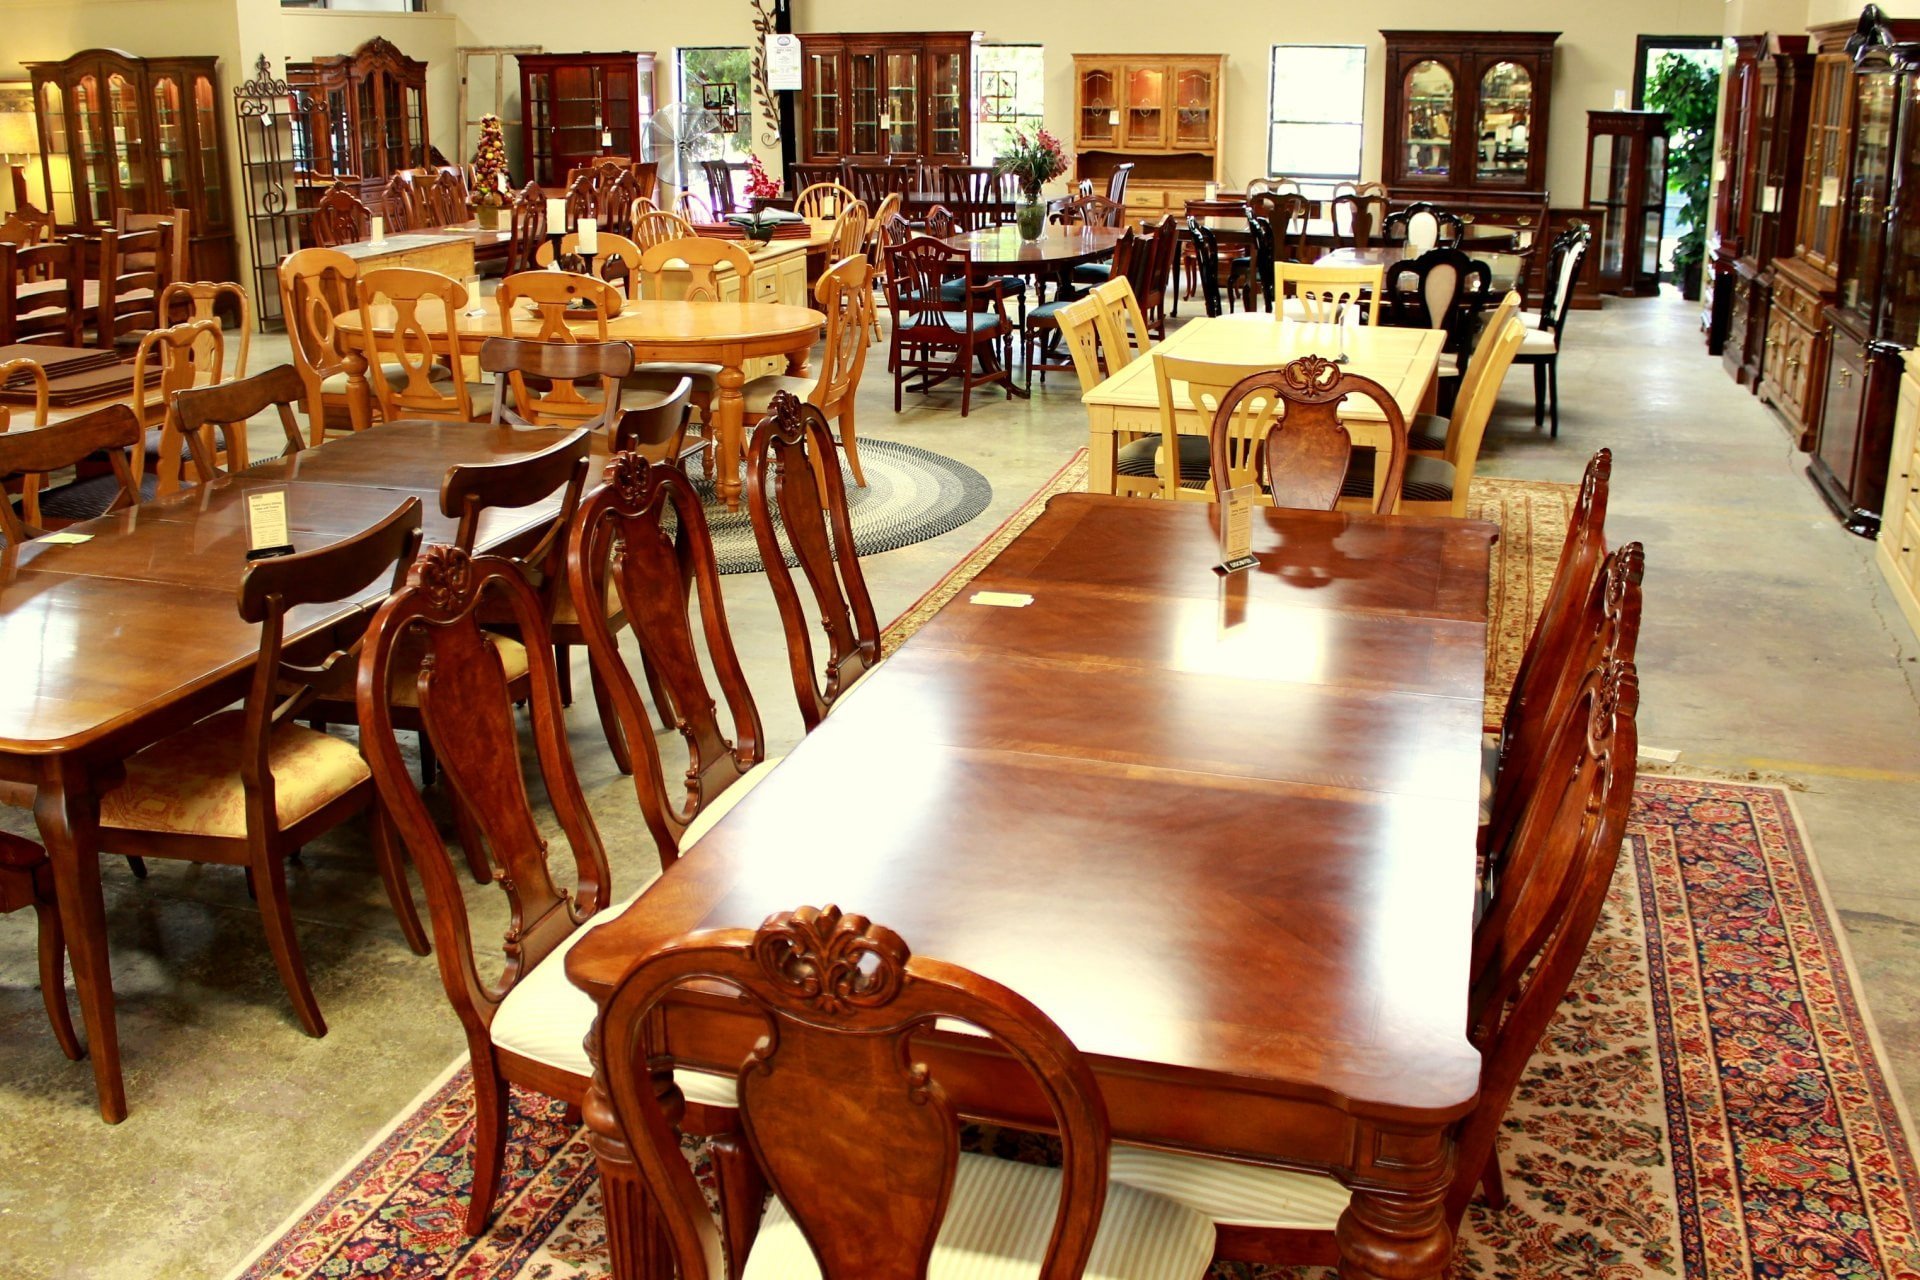 Upscale Consignment Furniture and Decor Inspirational Upscale Consignment Furniture & Decor In Gladstone or